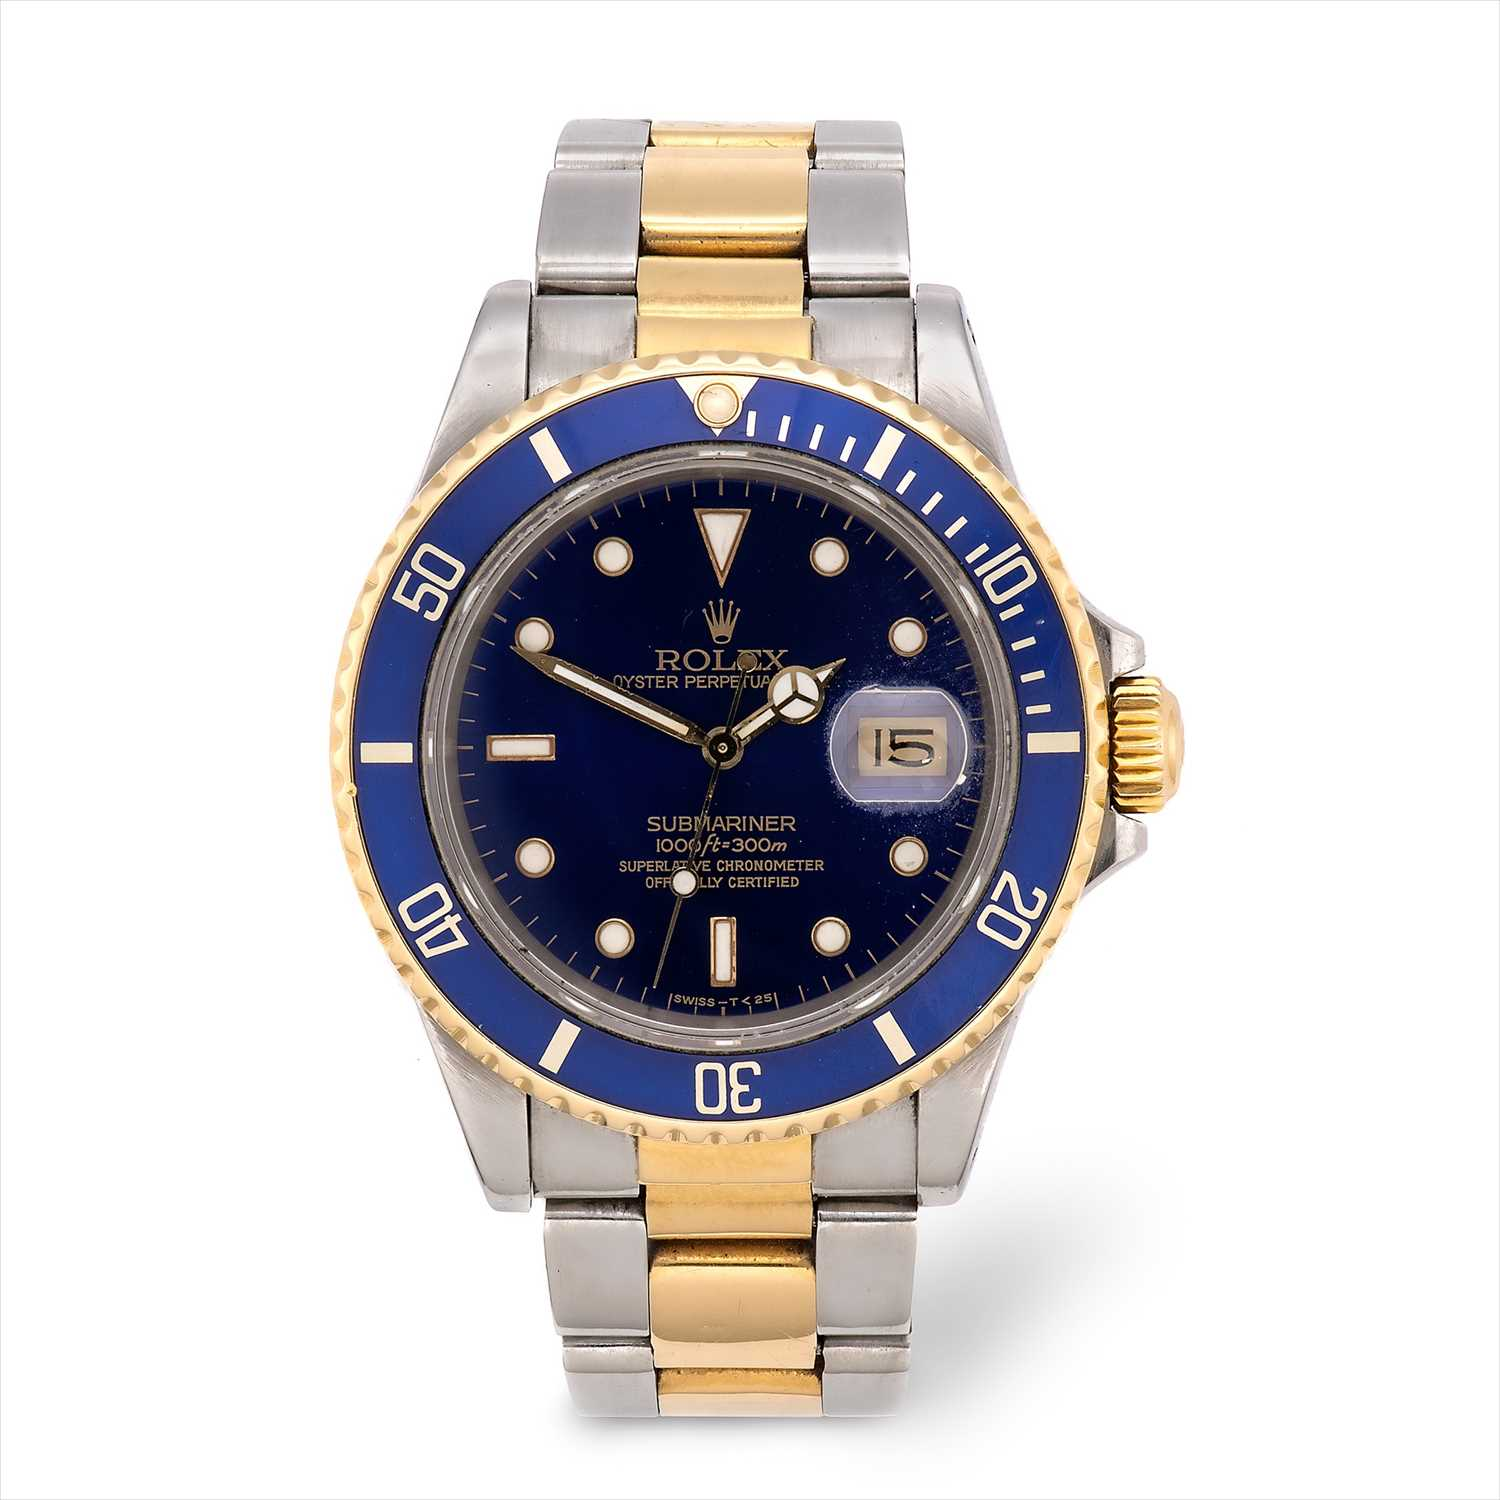 Lot 112-Rolex - an Oyster Perpetual Date Submariner bi-metal automatic bracelet watch.